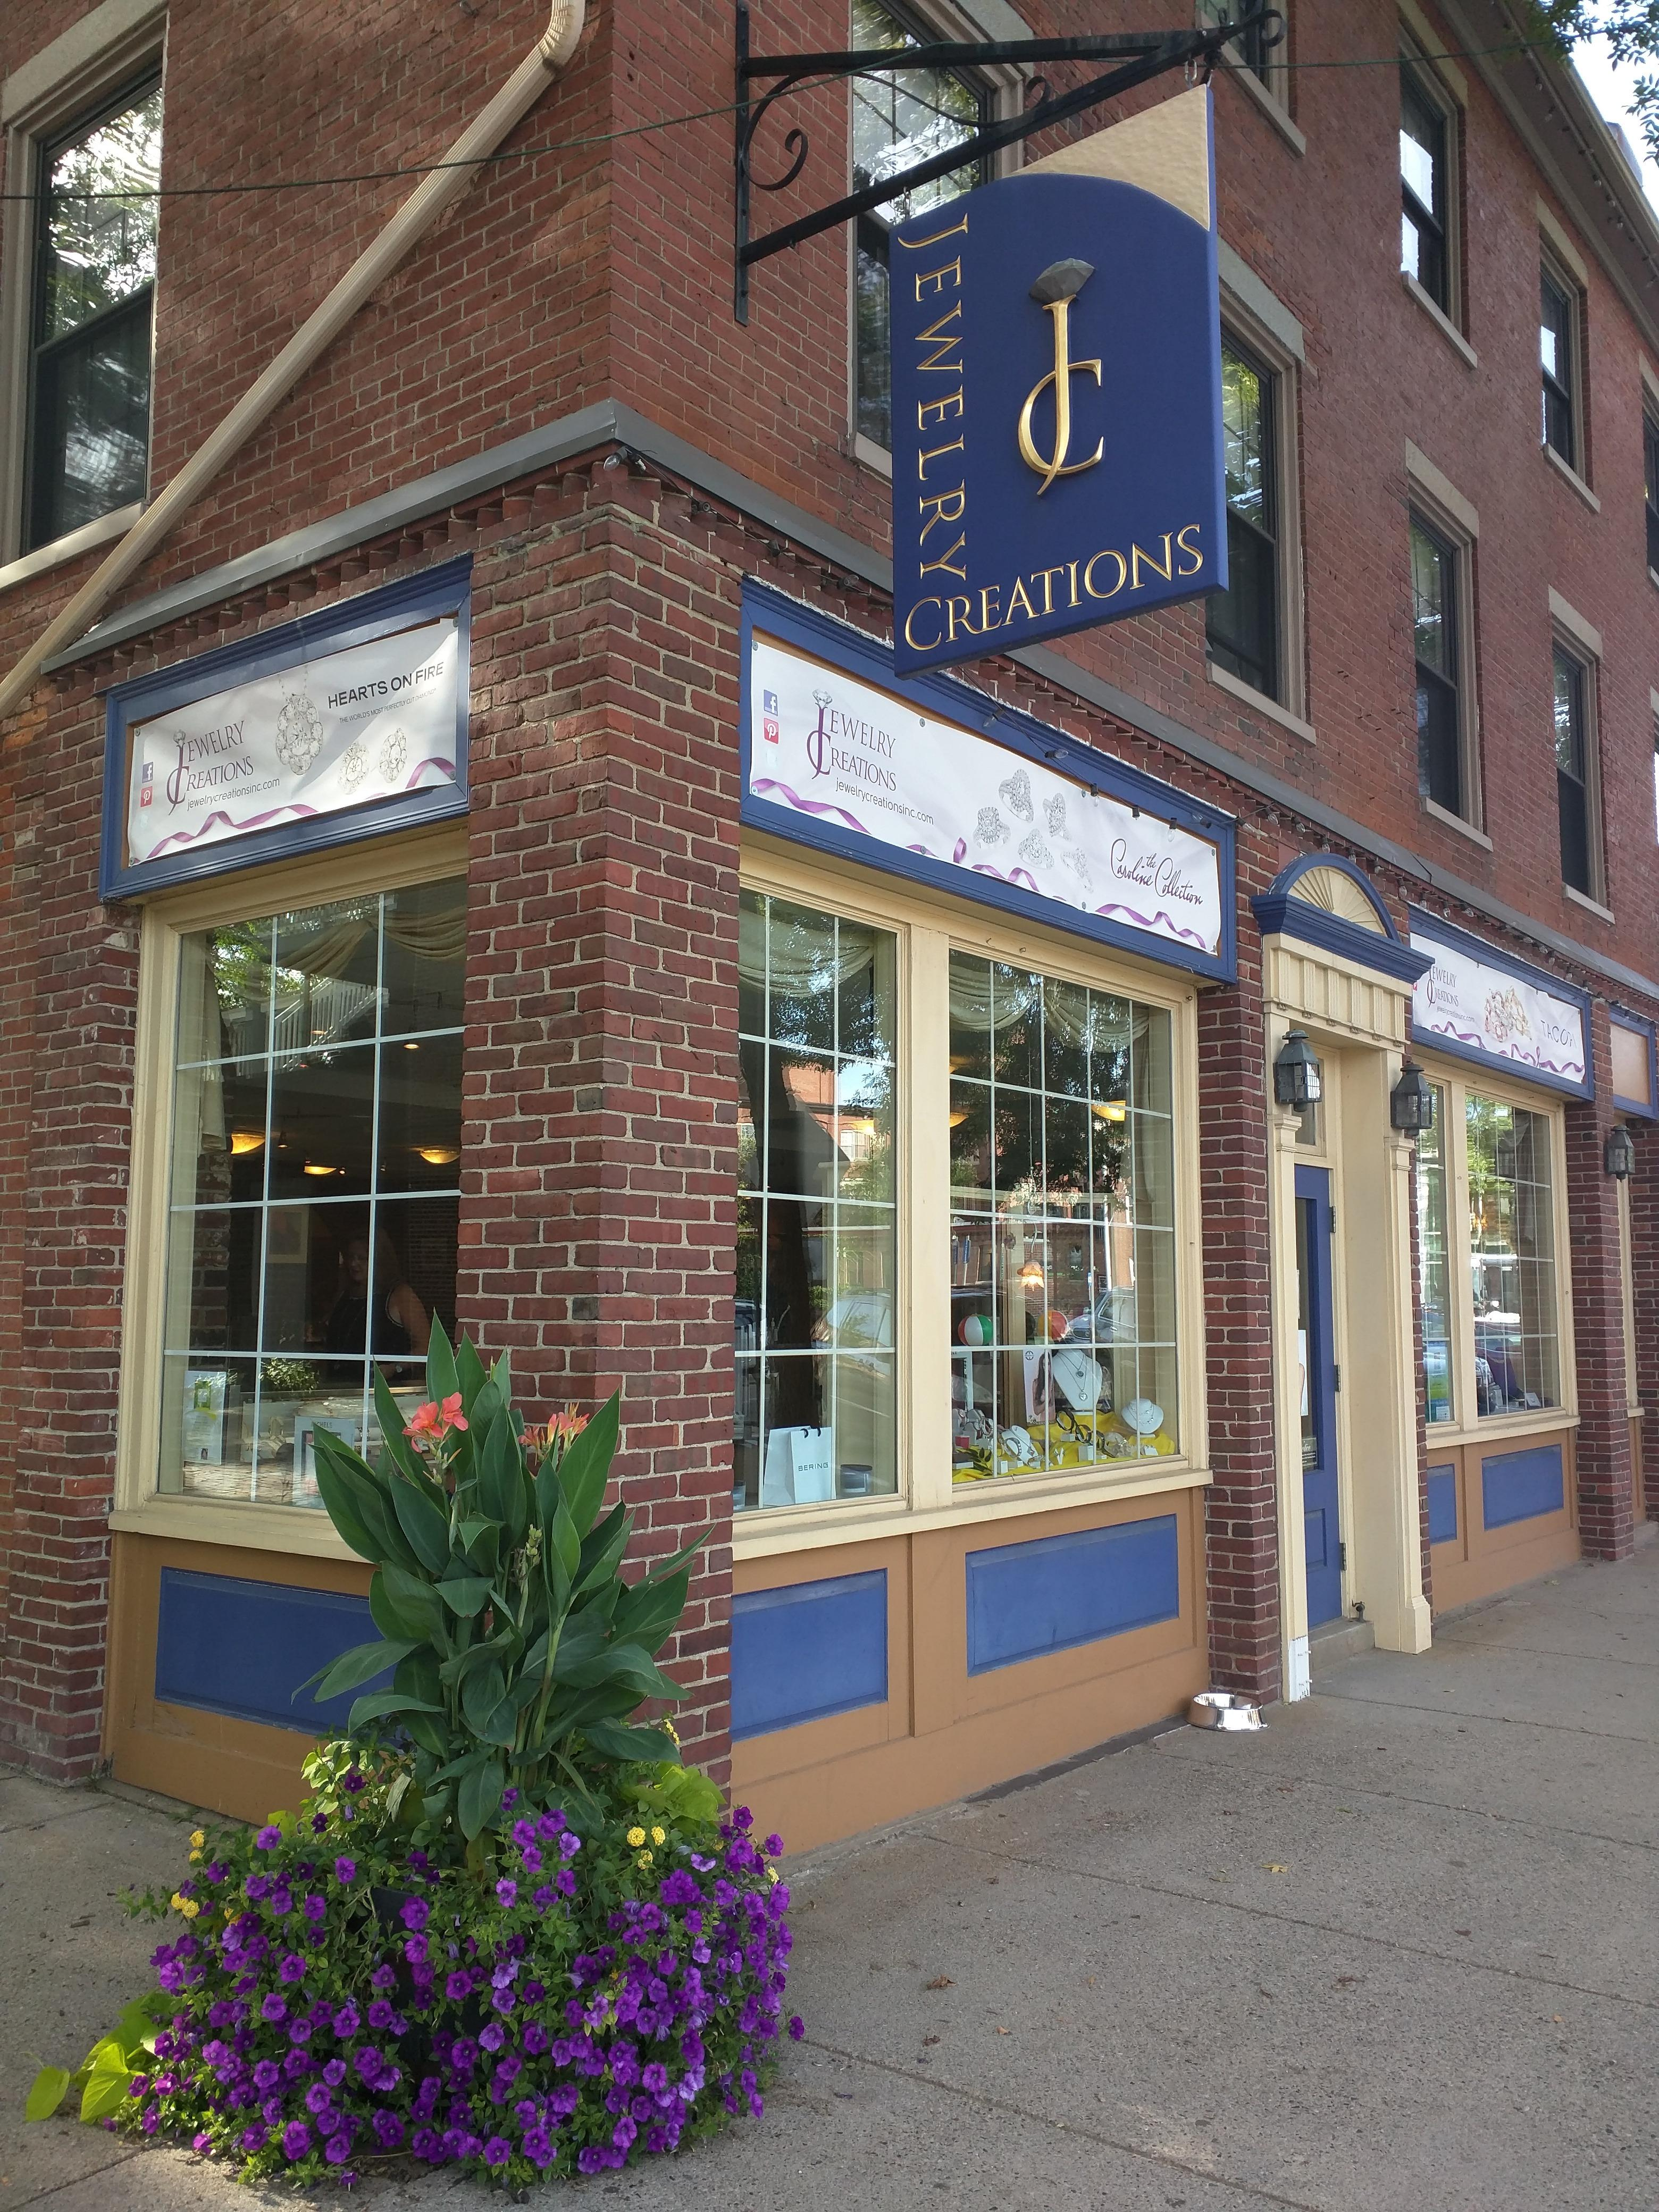 Jewelry creations in dover nh 03820 for Michaels crafts hours of operation